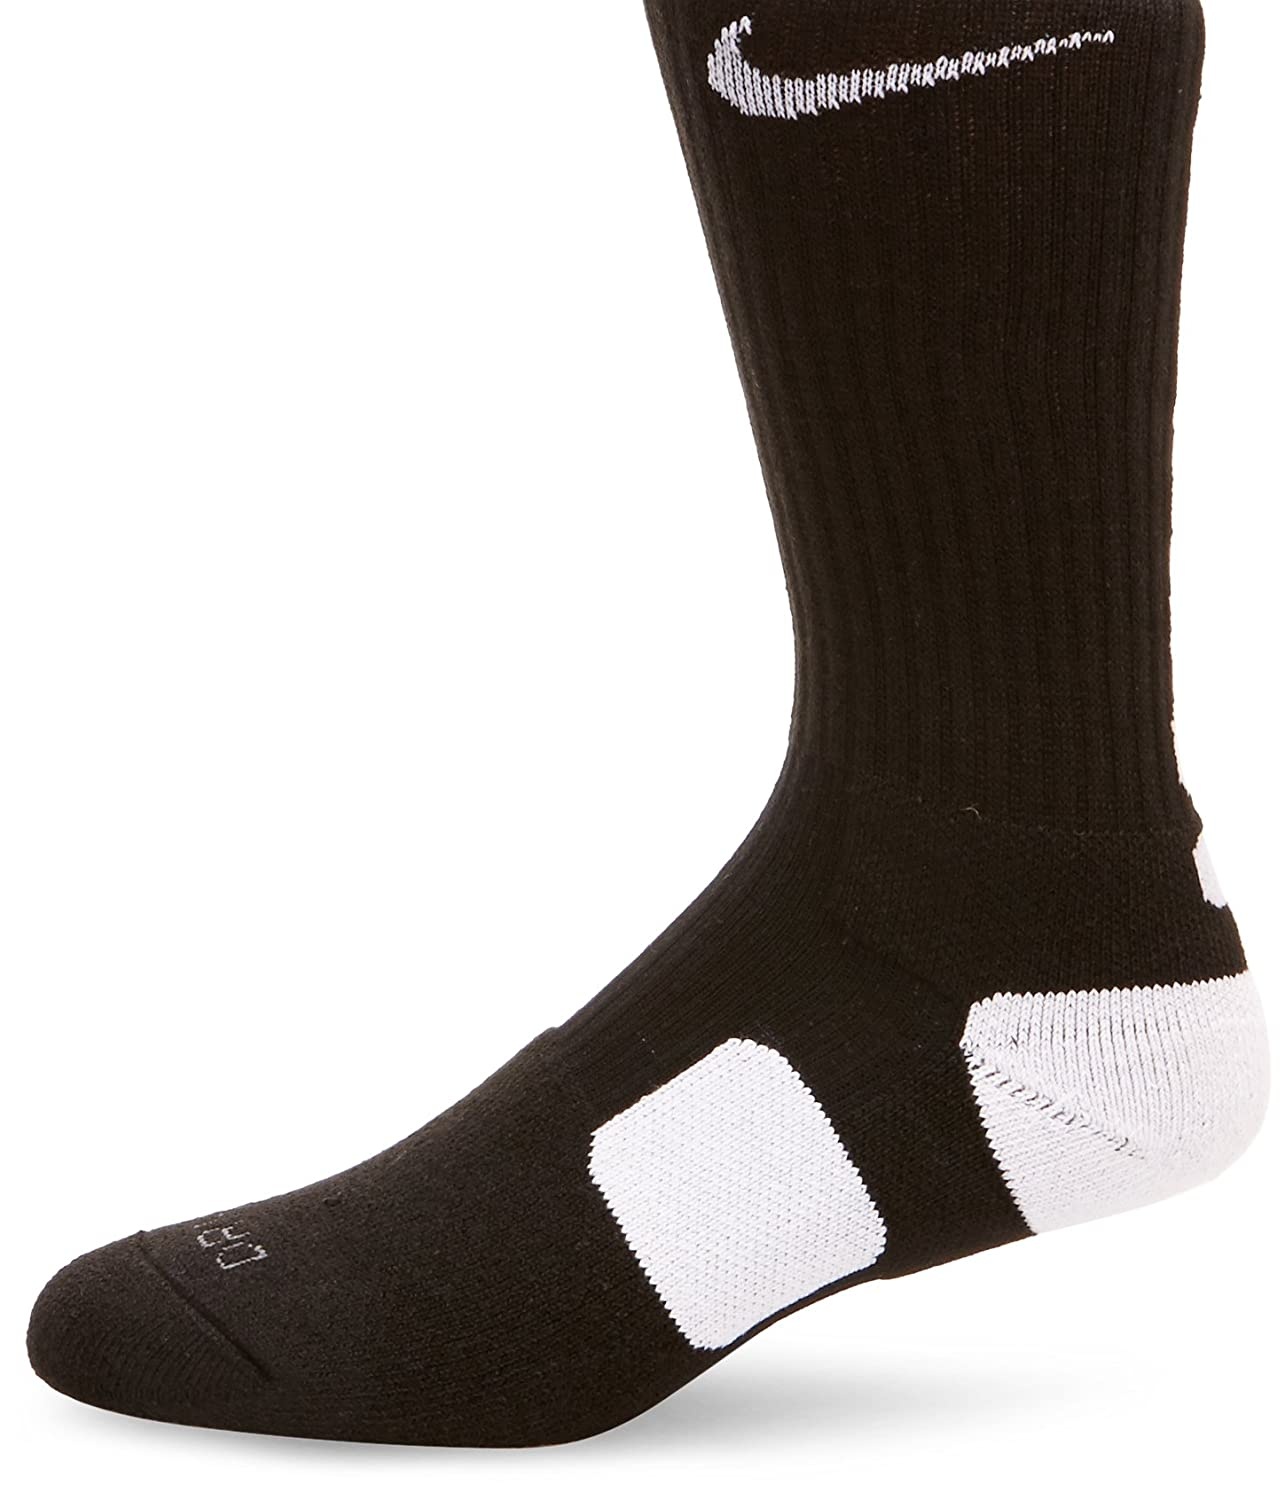 6d552b251 Amazon.com : Nike Elite Cushioned Crew Basketball Socks - 1 Pair - Medium -  Mens 6-8 or Womens 6-10 Size Black : Basketball Apparel : Sports & Outdoors